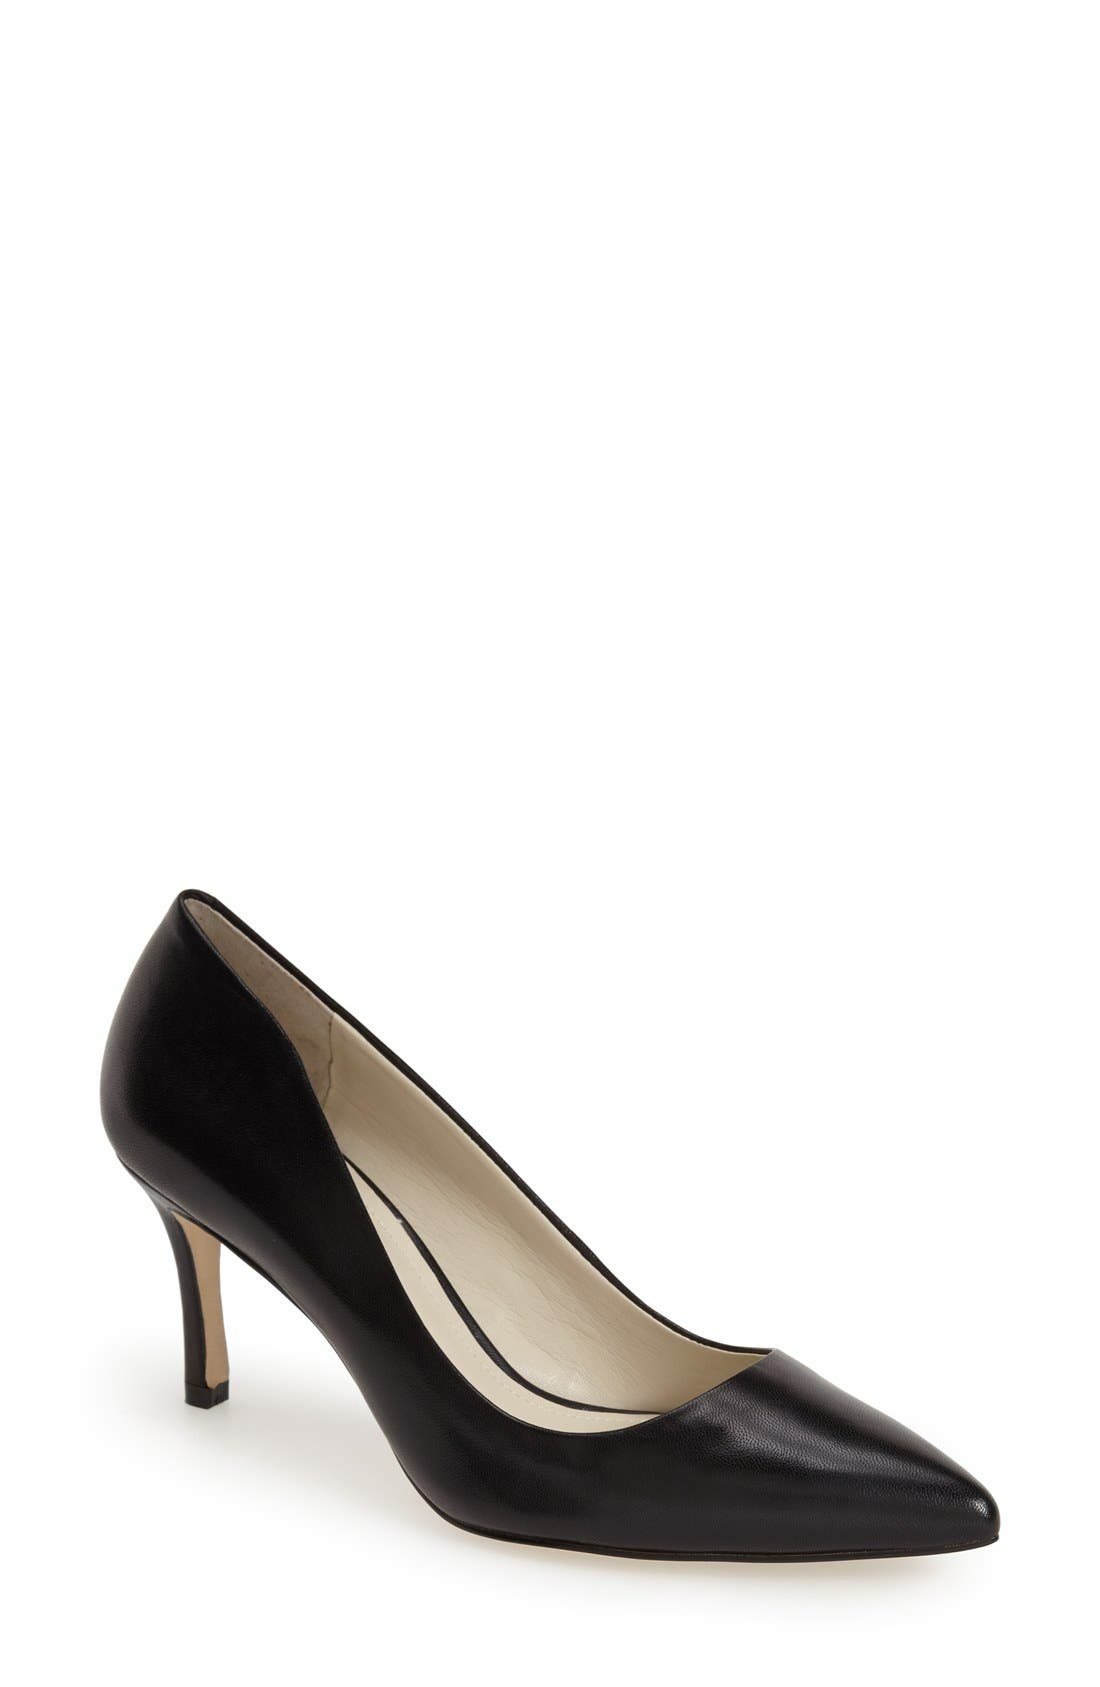 Alternate Image 1 Selected - BCBGeneration 'Pinni' Pointy Toe Pump (Women)